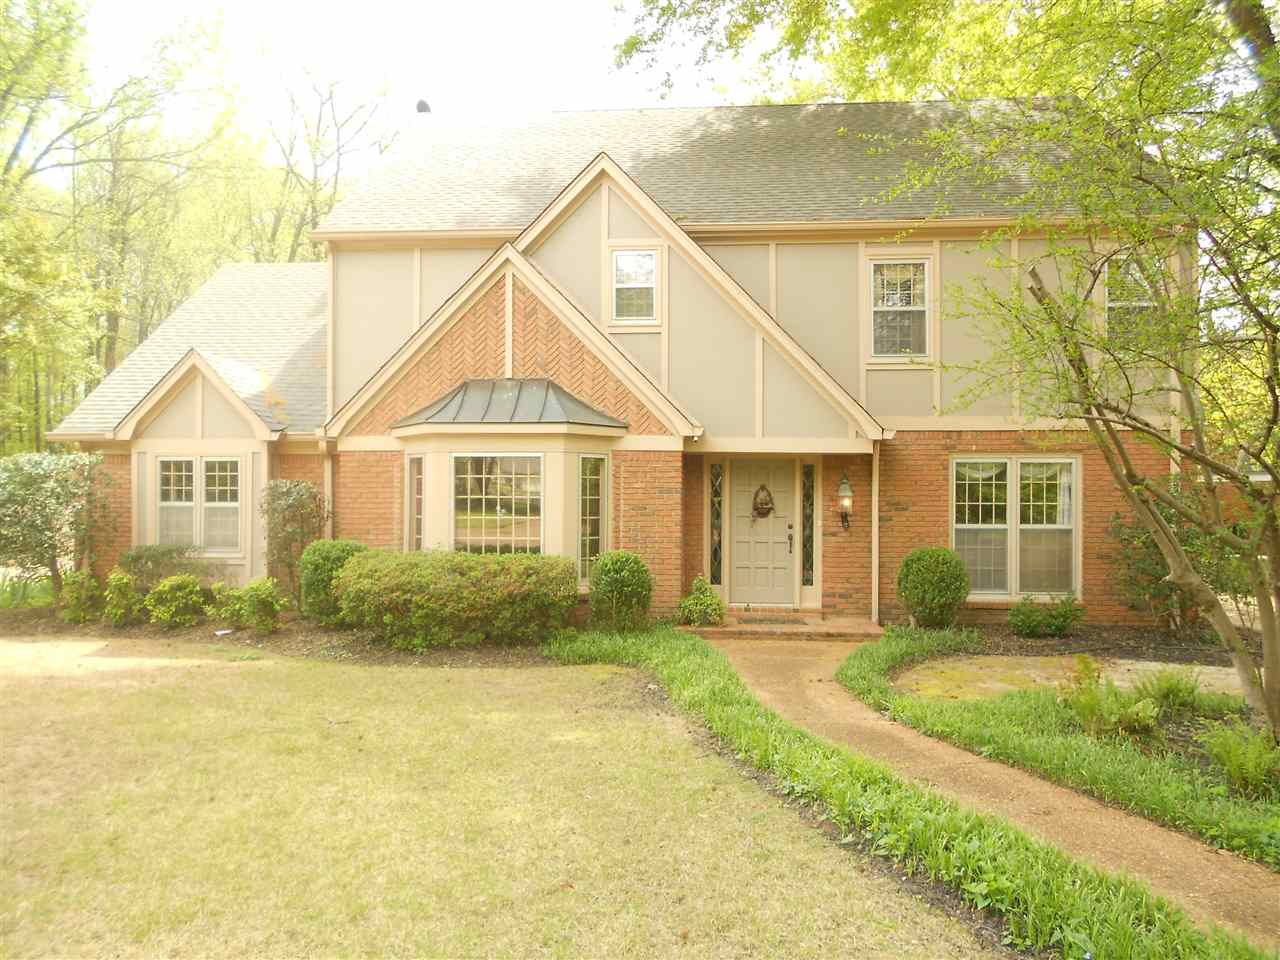 2594 Cedarwood Germantown, TN 38138 - MLS #: 9999689